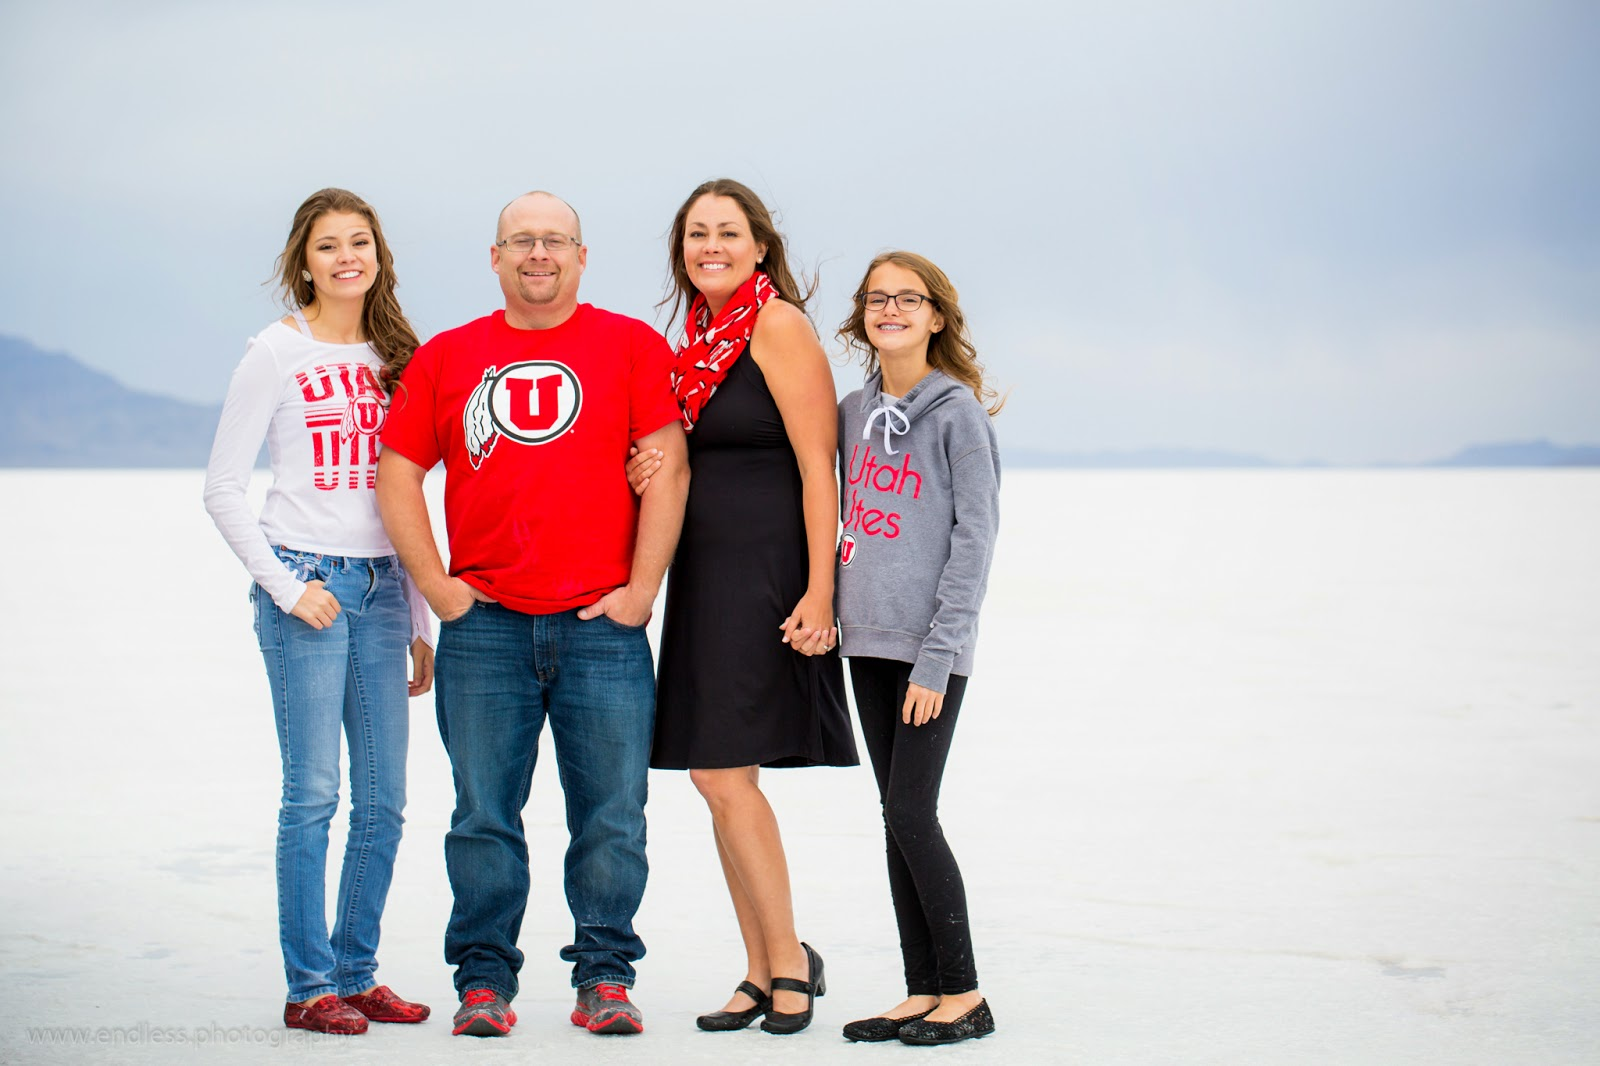 Logan Utah Photographers, Logan, Utah, Salt Flats, Family, Photos, Families